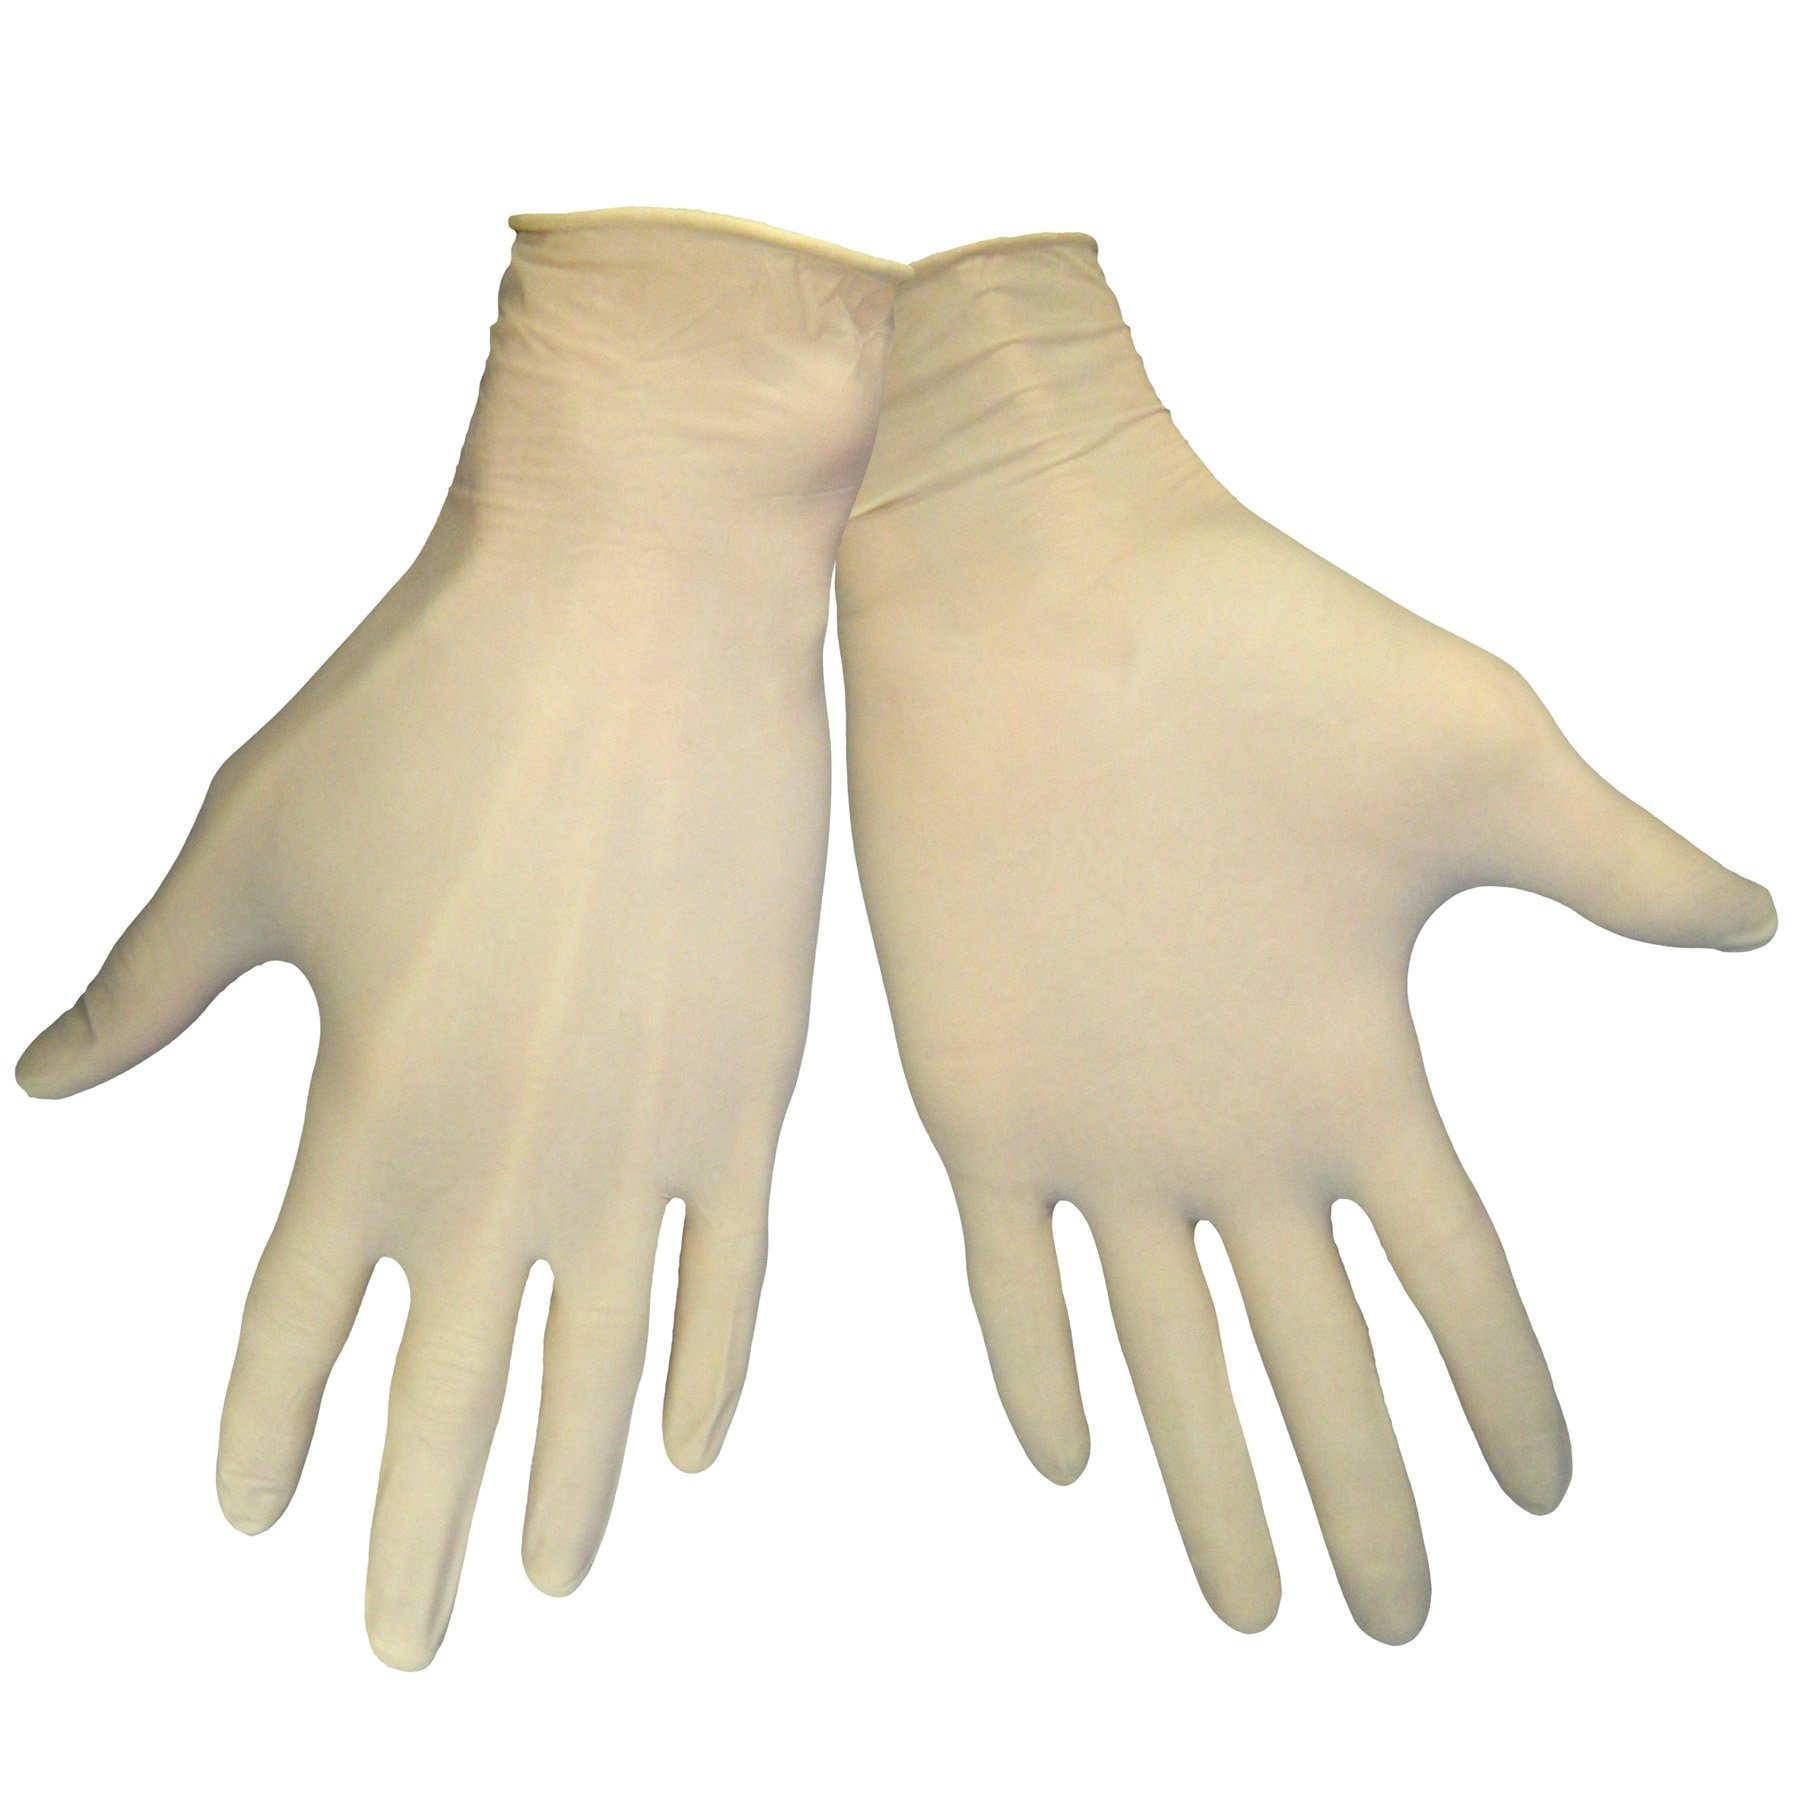 Global Glove 305 Latex Lightly Glove, Disposable, Powdered, Medium (Case of 1000) by Global Glove